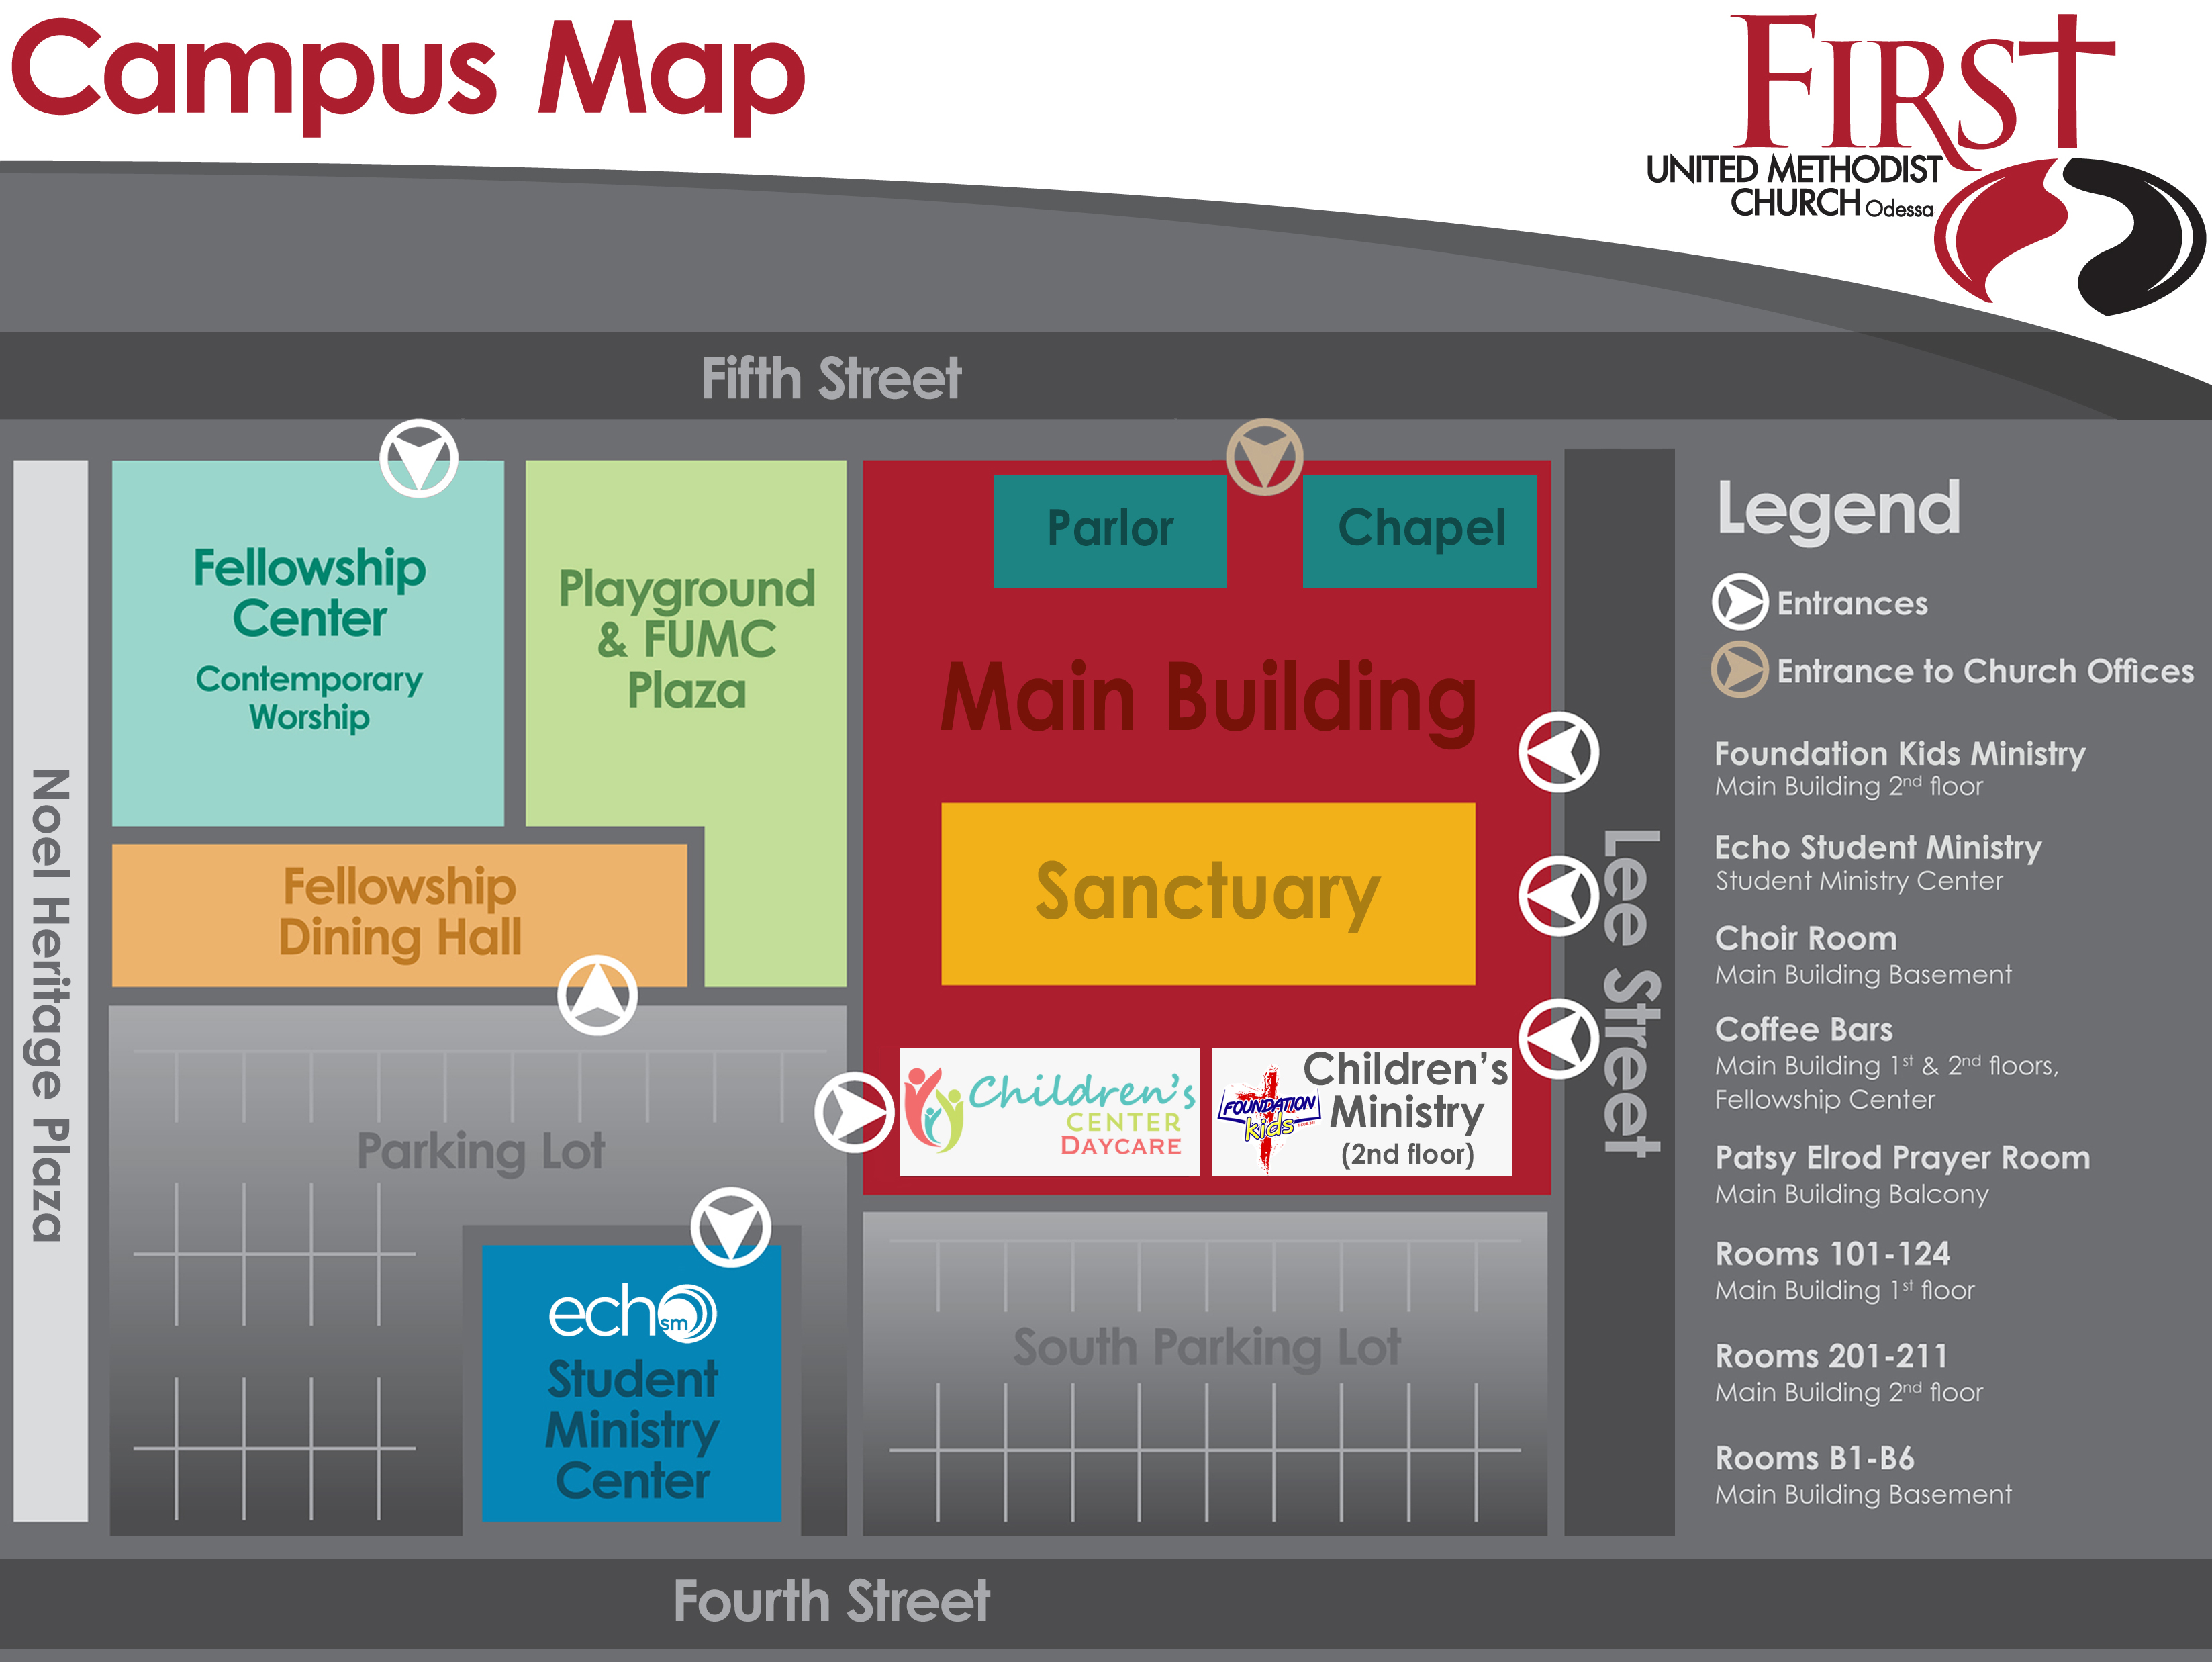 Holy Family Campus Map.Campus Map First United Methodist Church Of Odessa Tx